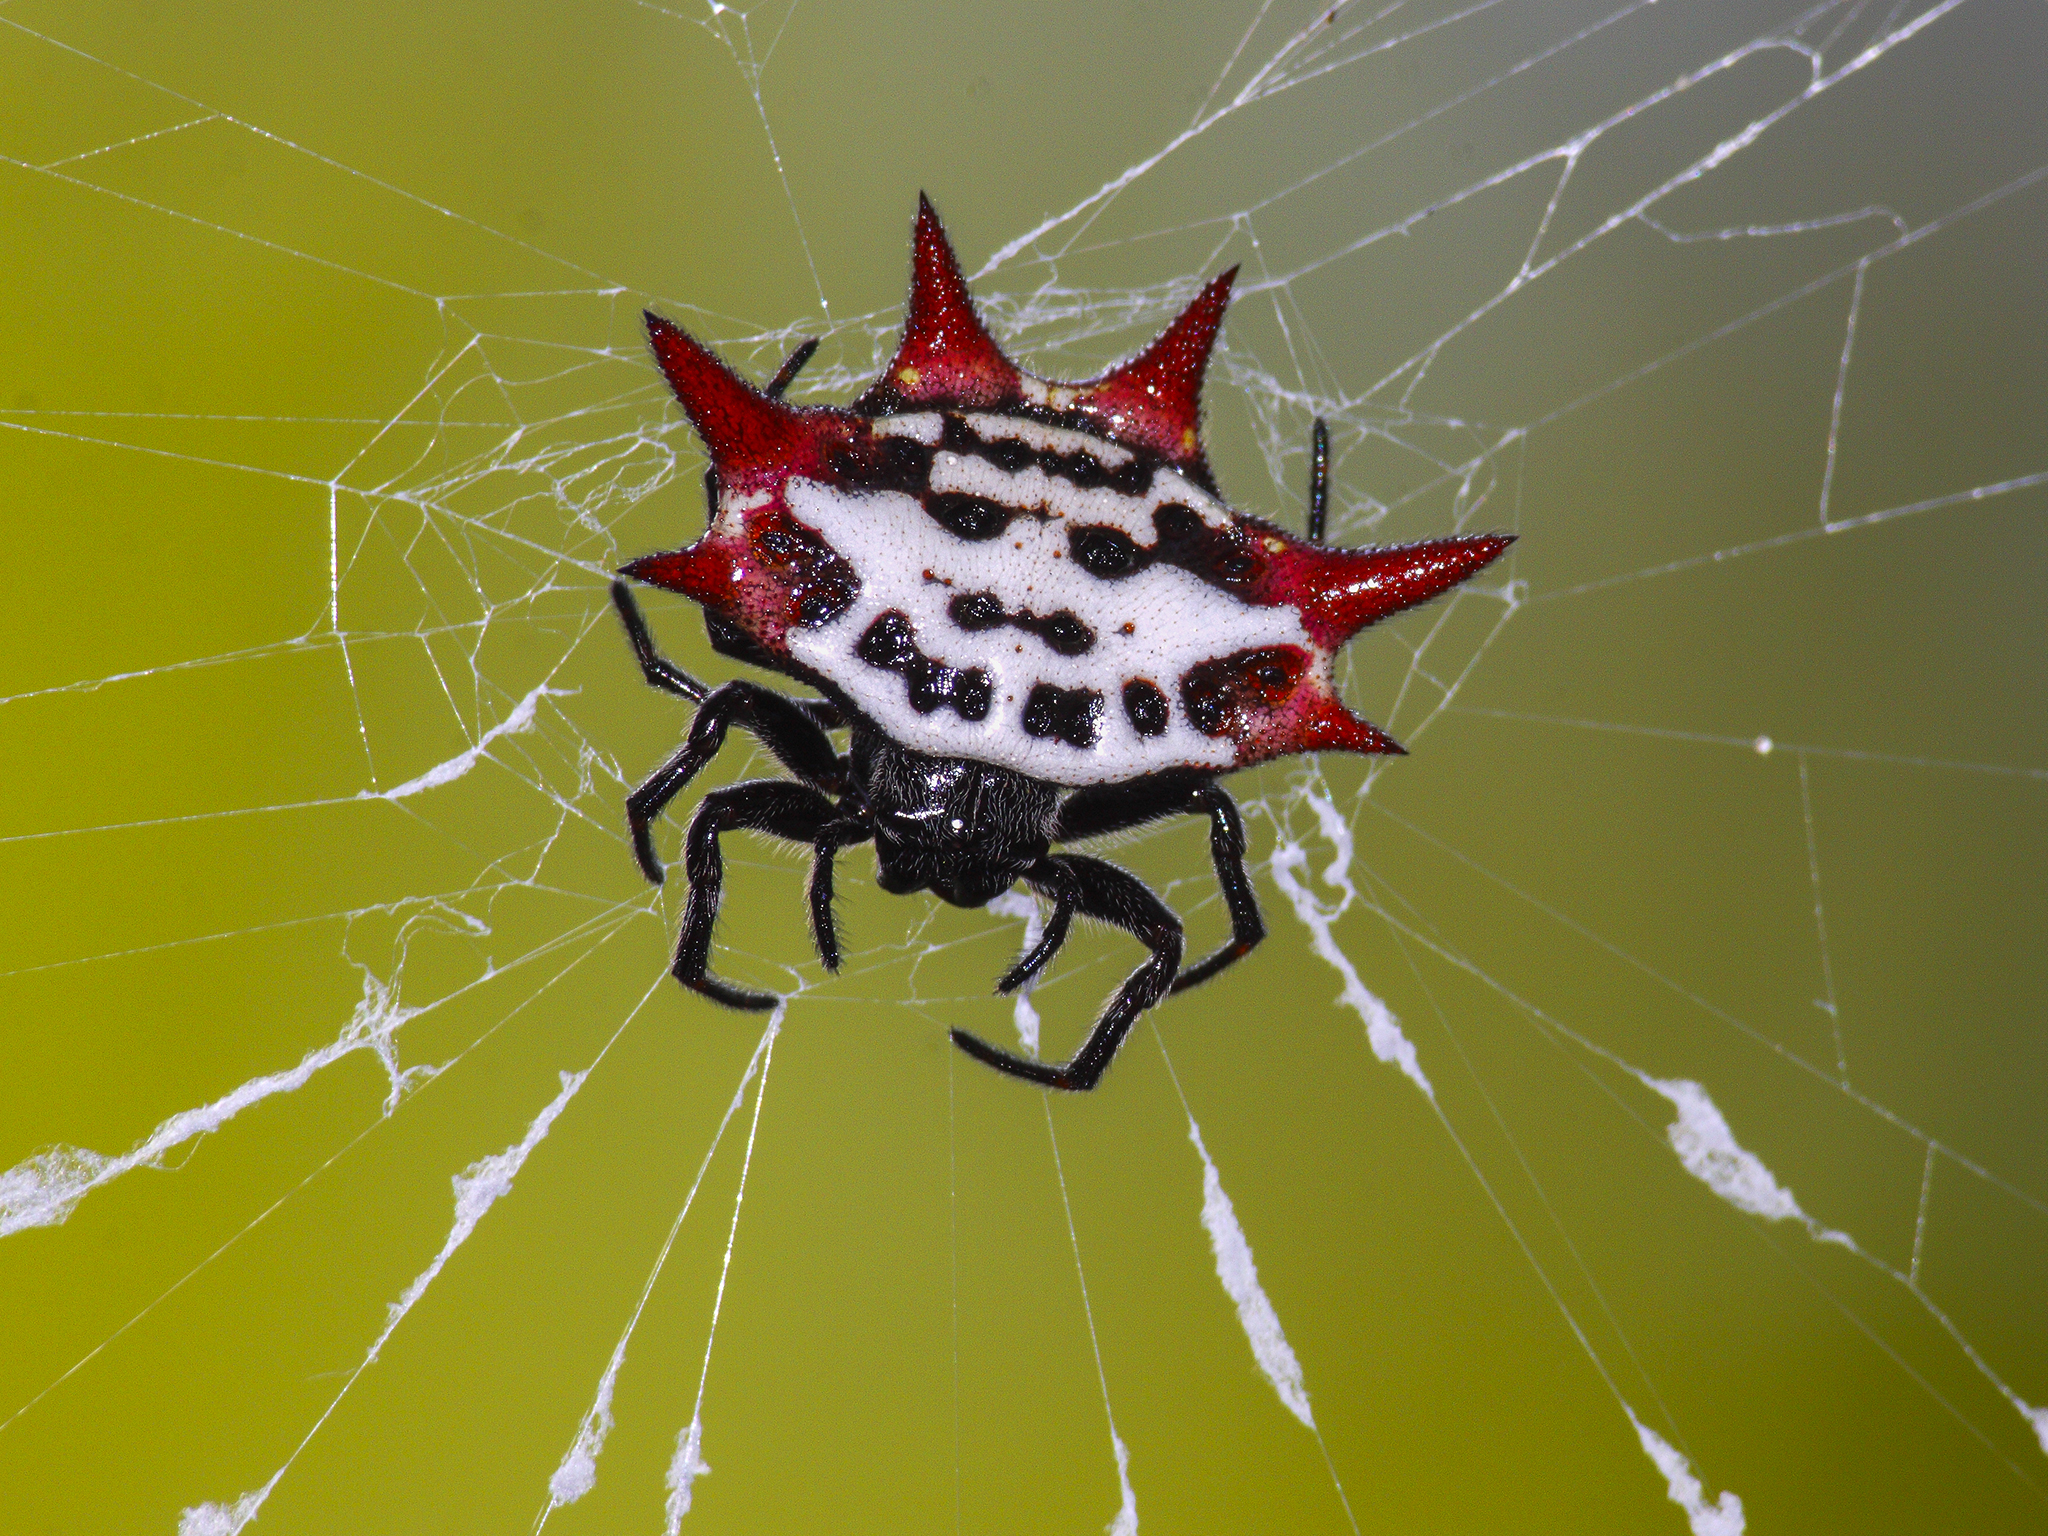 A photo of a Spinybacked orb-weaver spider.